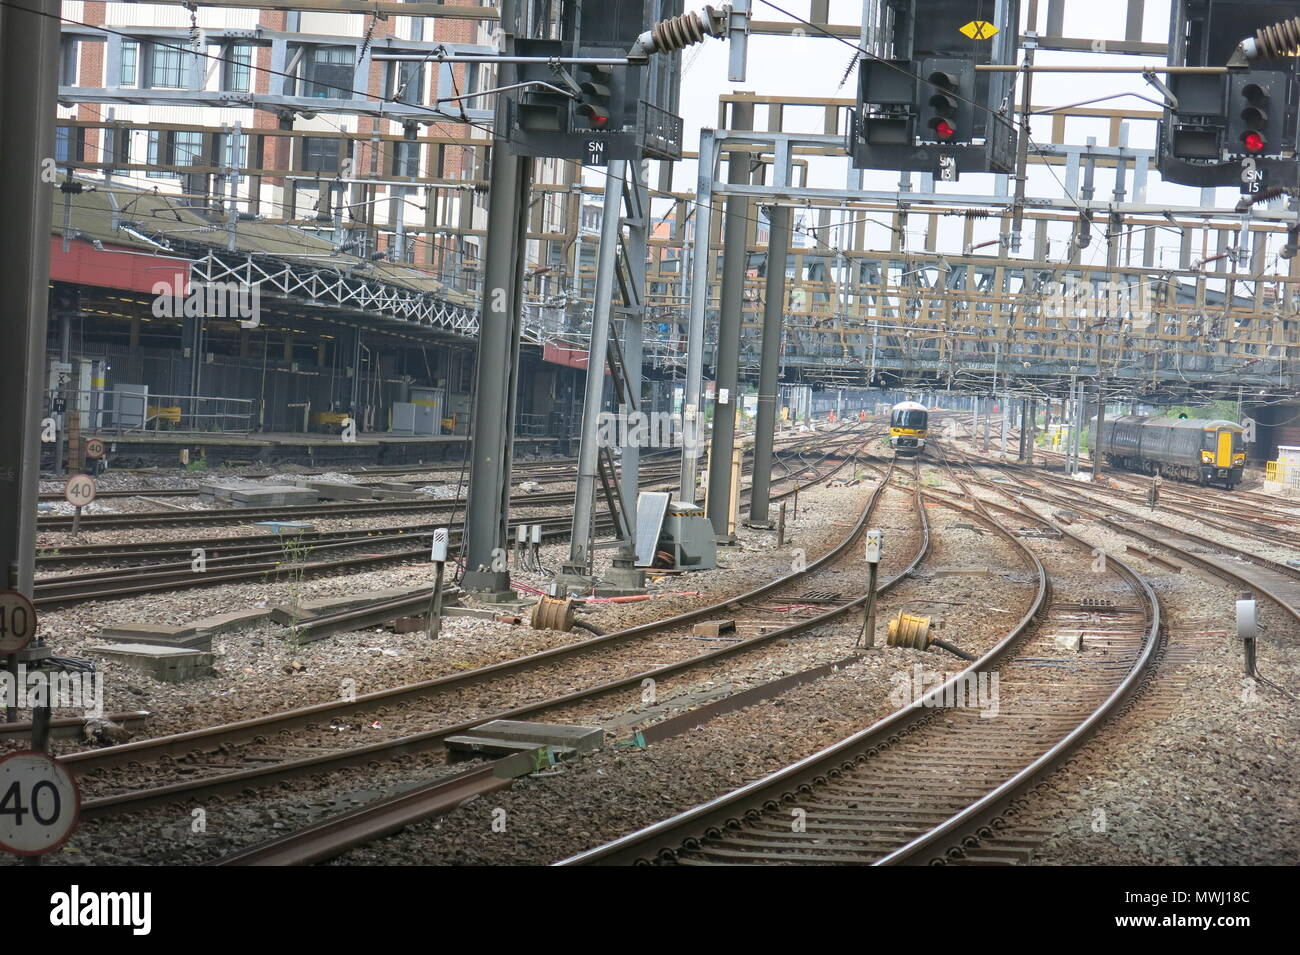 A view of the railway tracks whilst departing London Paddington Station, from aboard the Flying Scotsman on its Chilterns Tour, 31 May 2018 - Stock Image